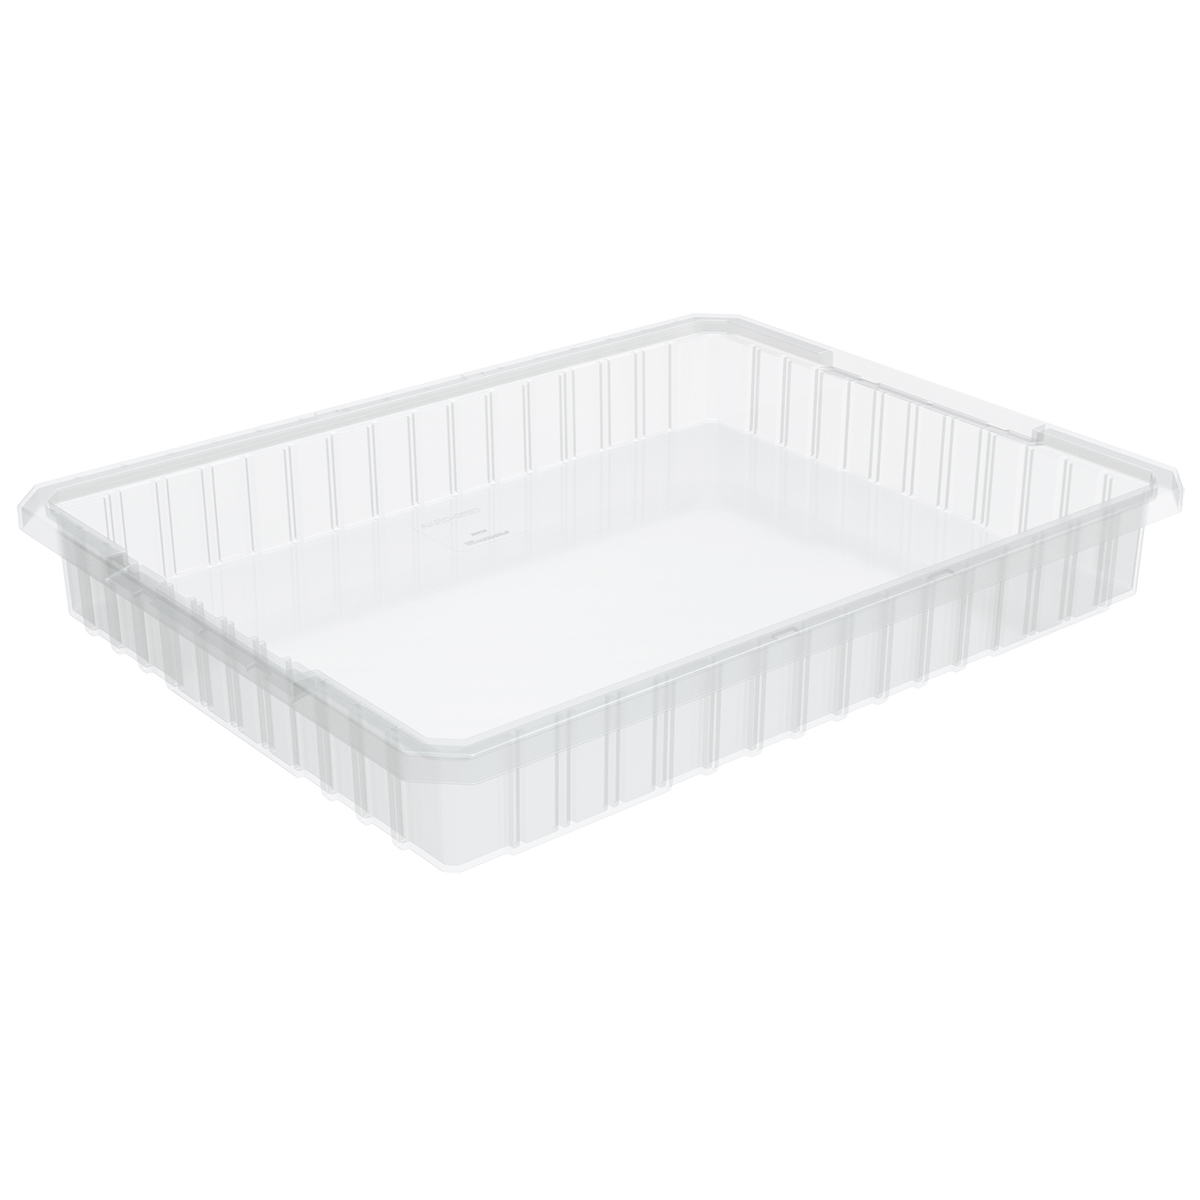 Akro-Grid Dividable Box 22-1/2 x 17-3/8 x 3, Clear (33223SCLAR).  This item sold in carton quantities of 6.